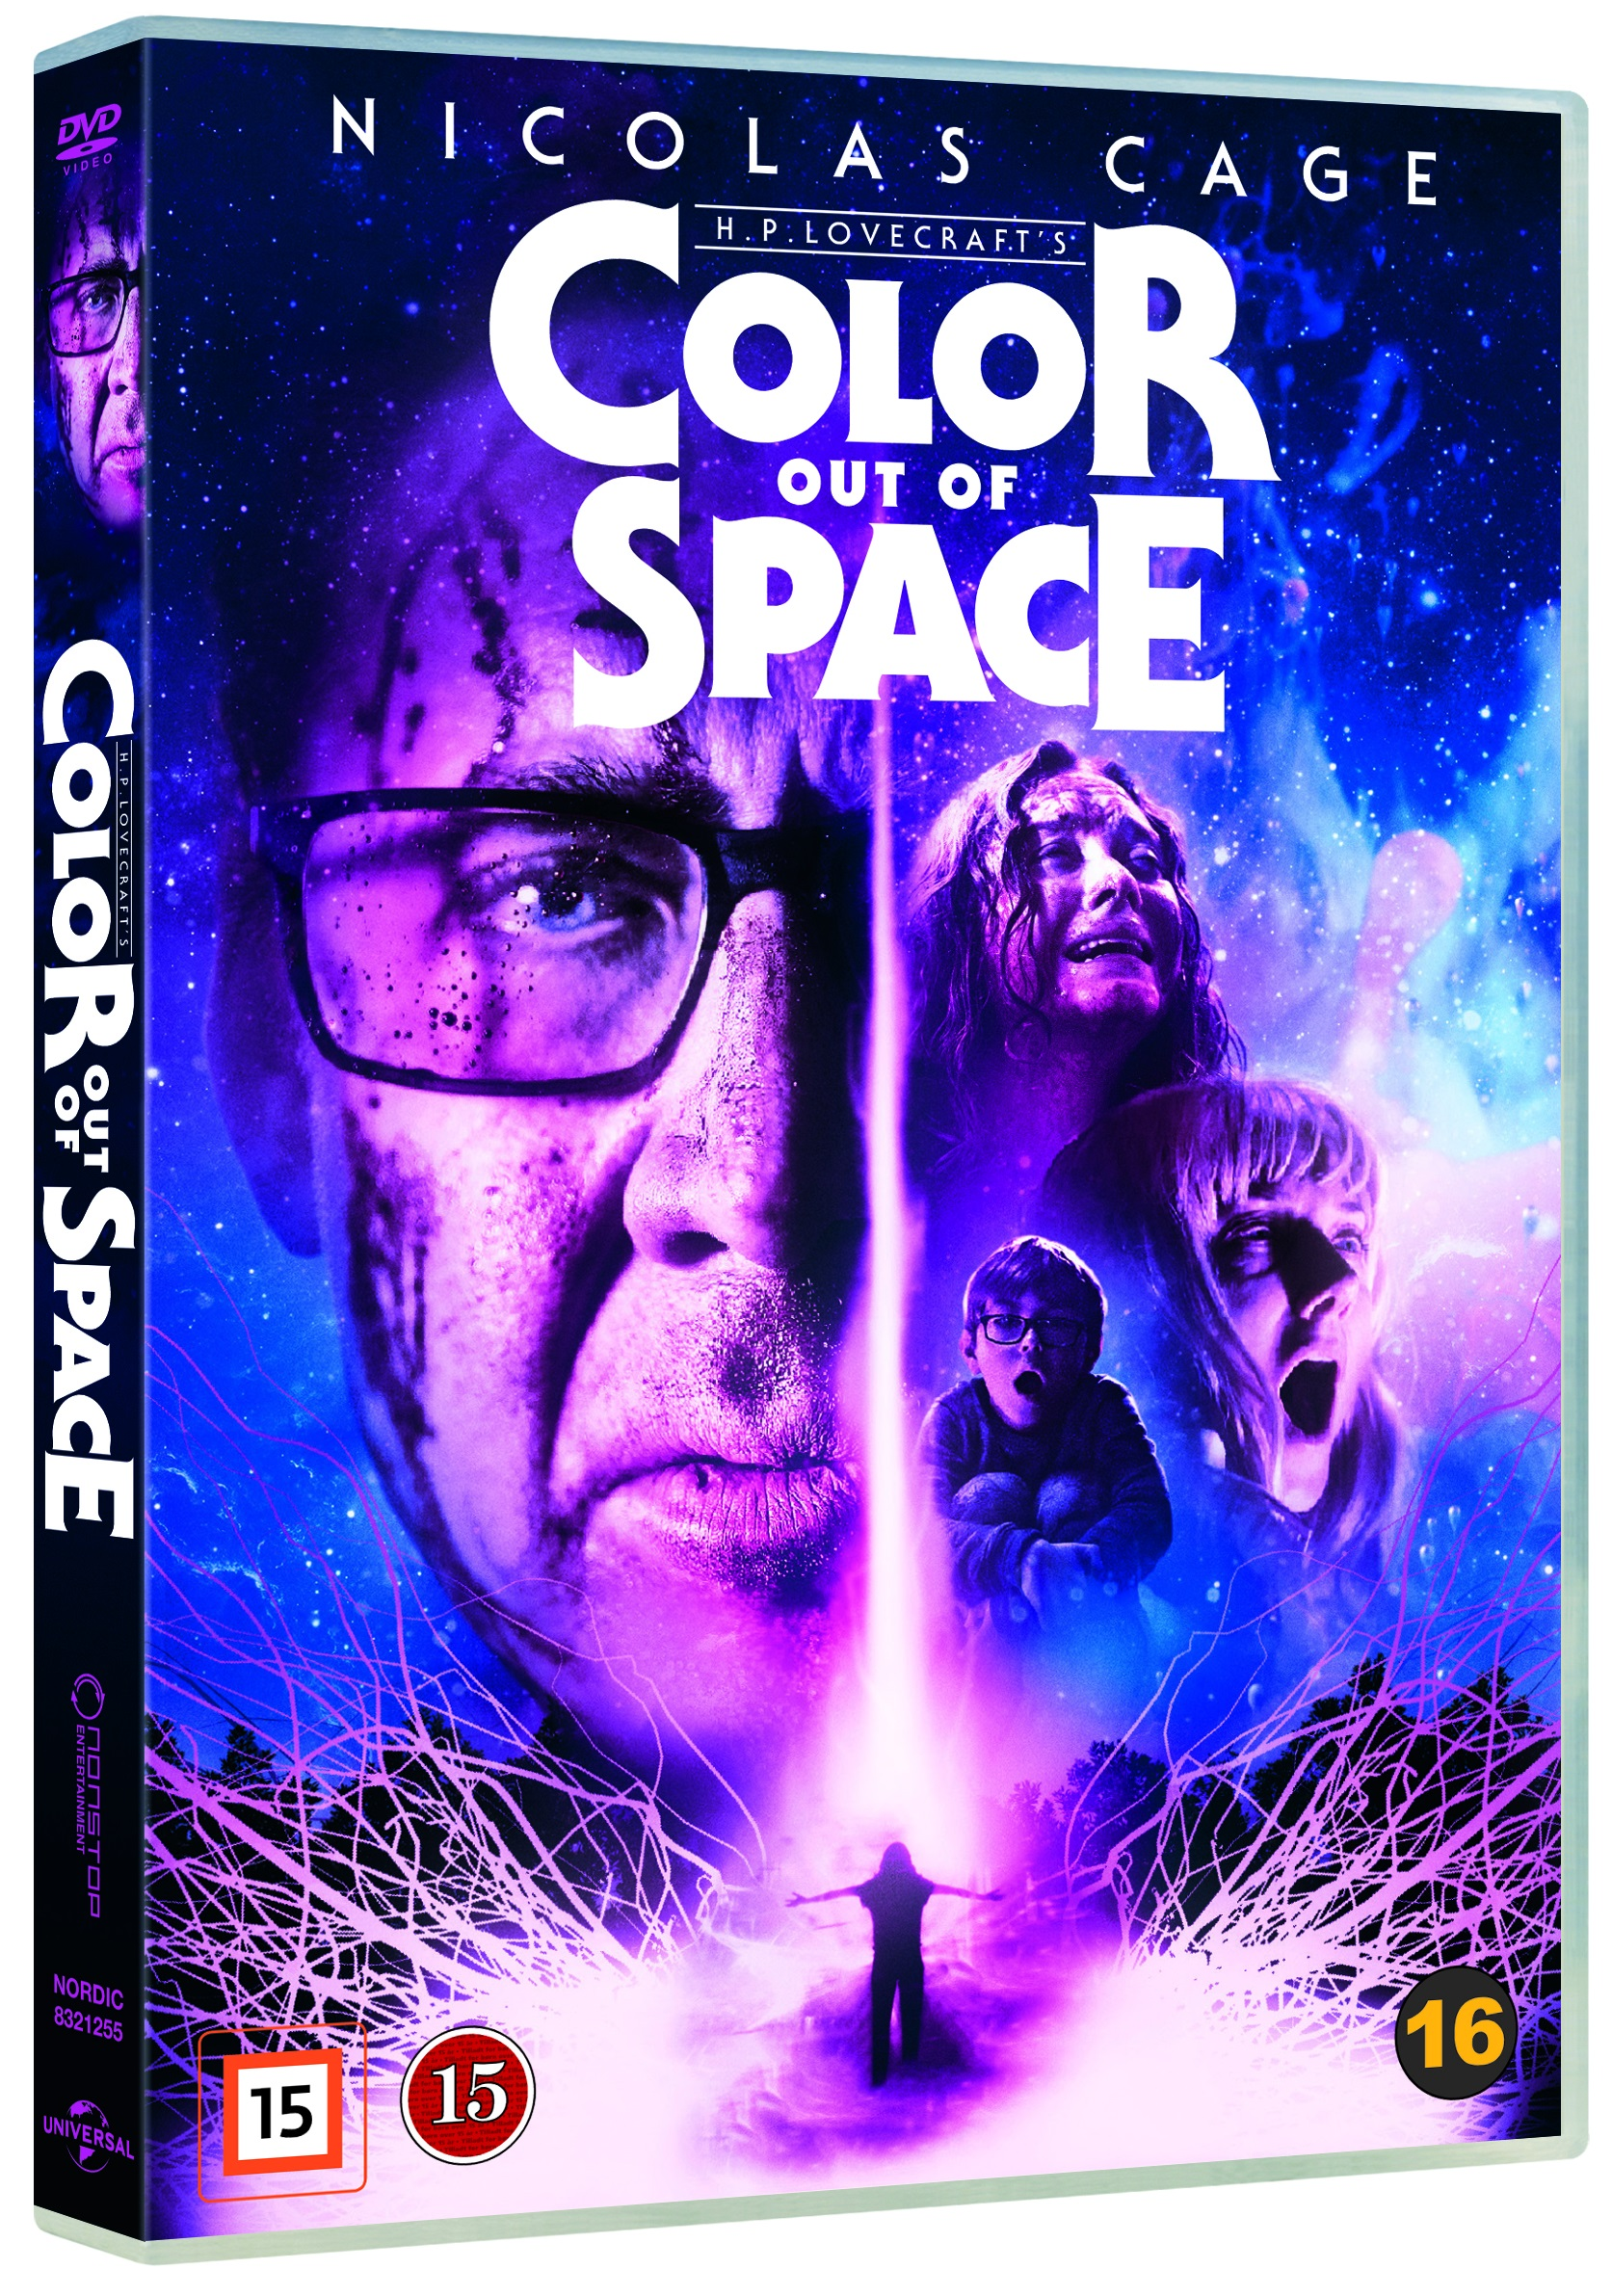 Color out of Space -  - Film -  - 5053083212551 - June 15, 2020